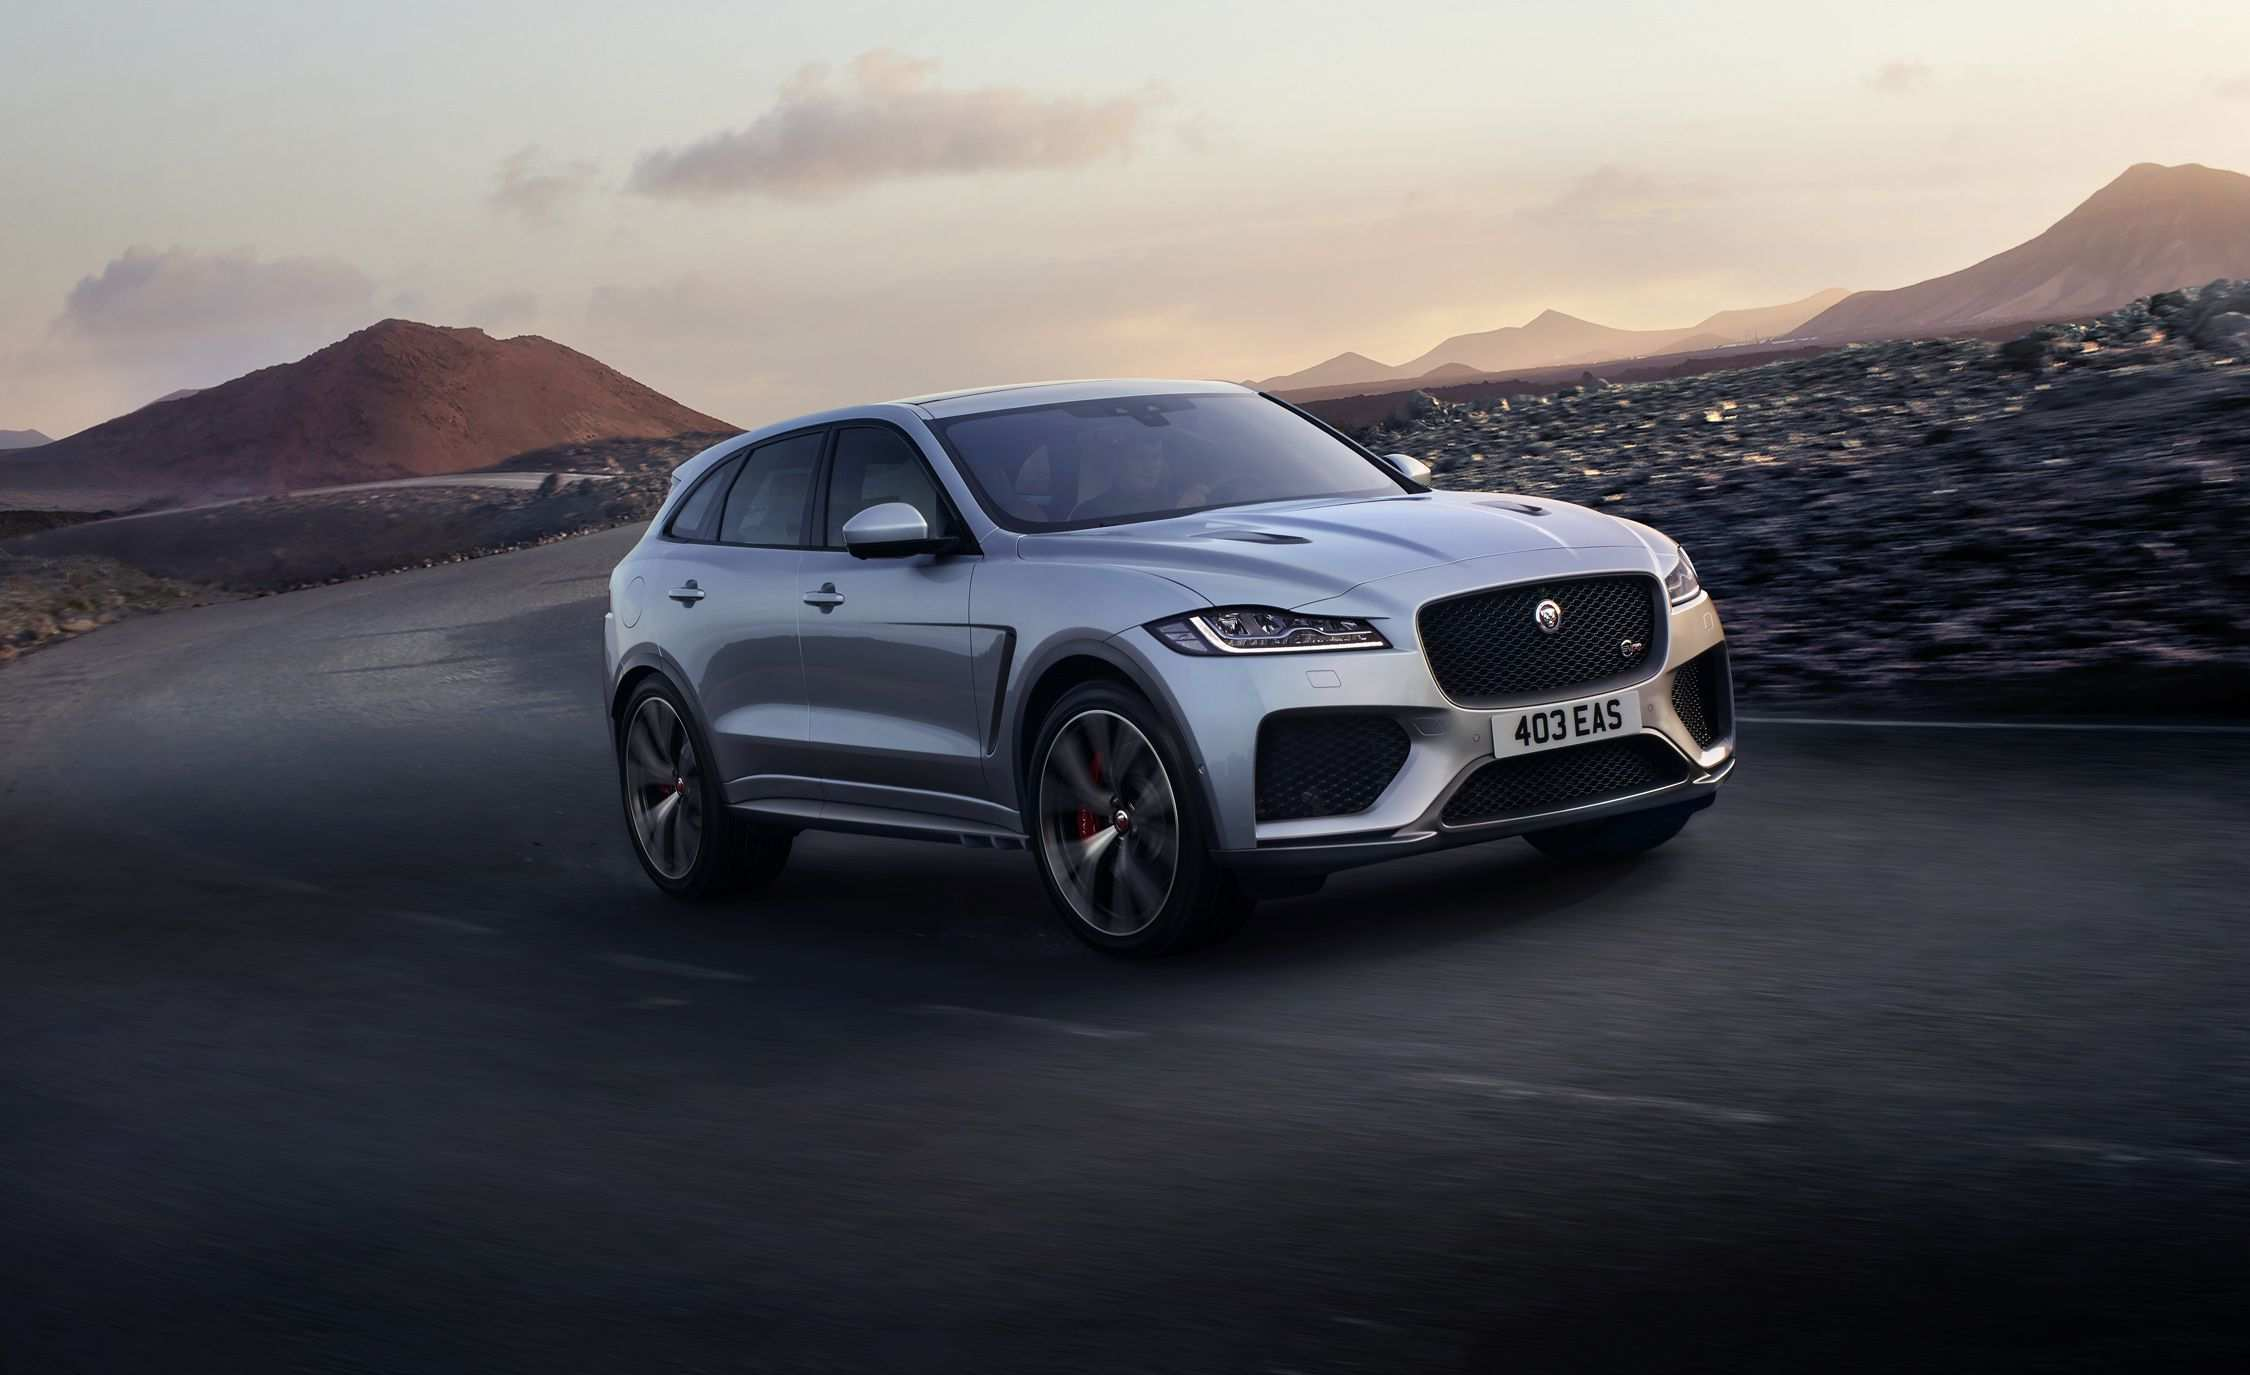 42 New 2019 Jaguar F Pace Svr Images for 2019 Jaguar F Pace Svr